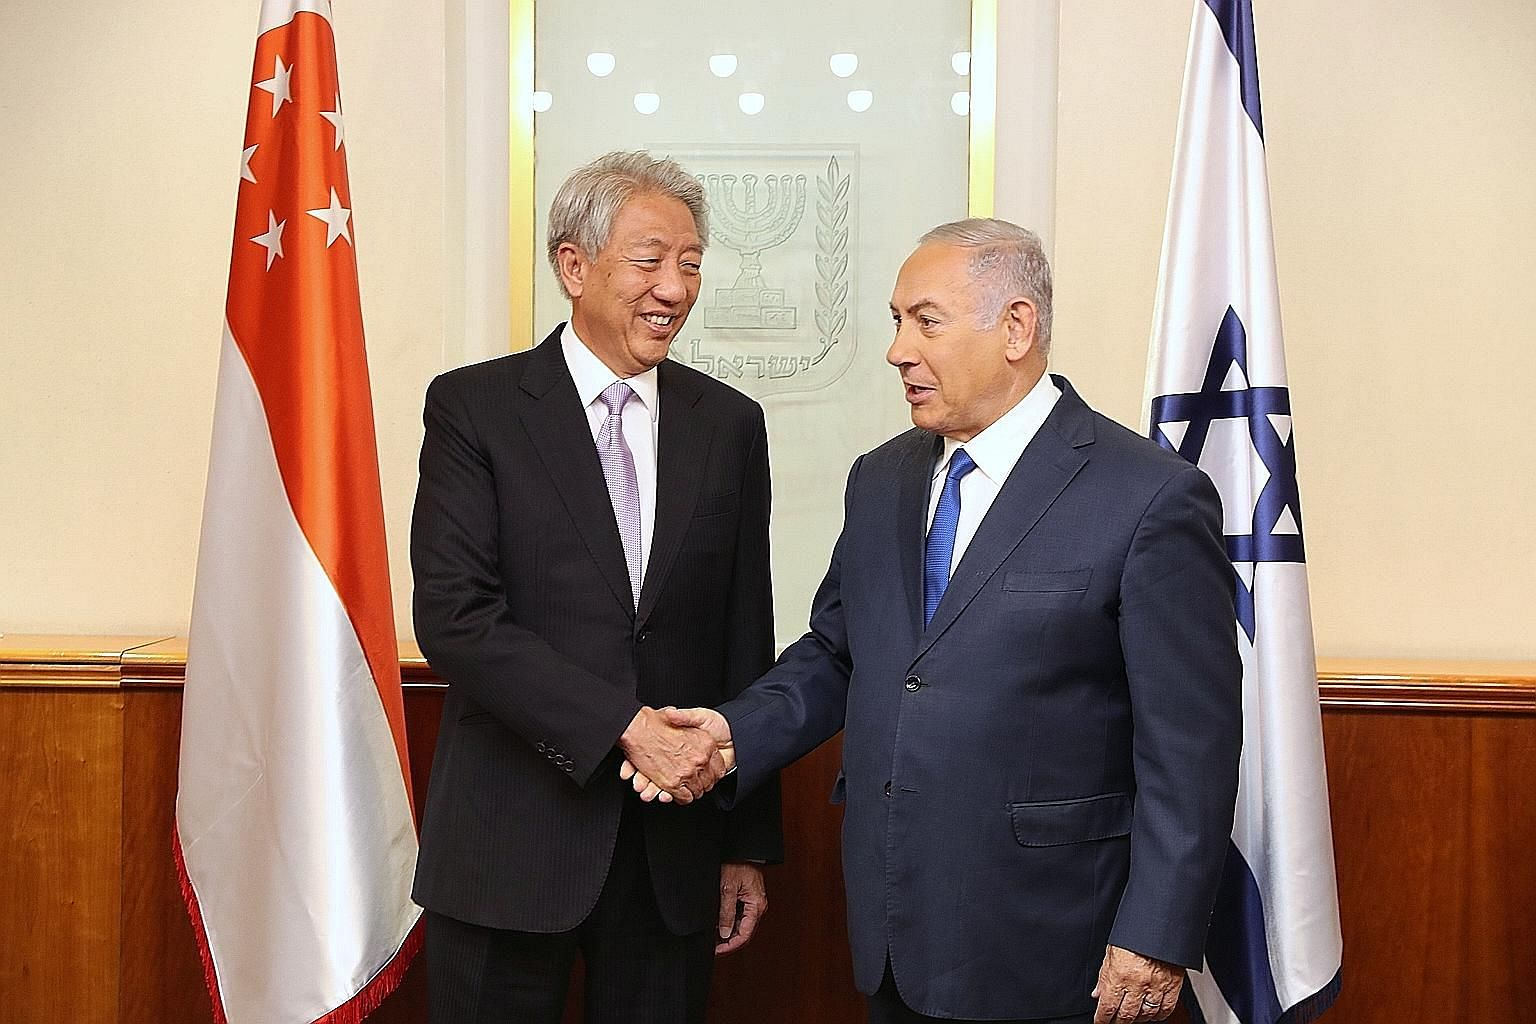 Deputy Prime Minister Teo Chee Hean and Israeli Prime Minister Benjamin Netanyahu reaffirmed the strong bilateral cooperation between the two countries.